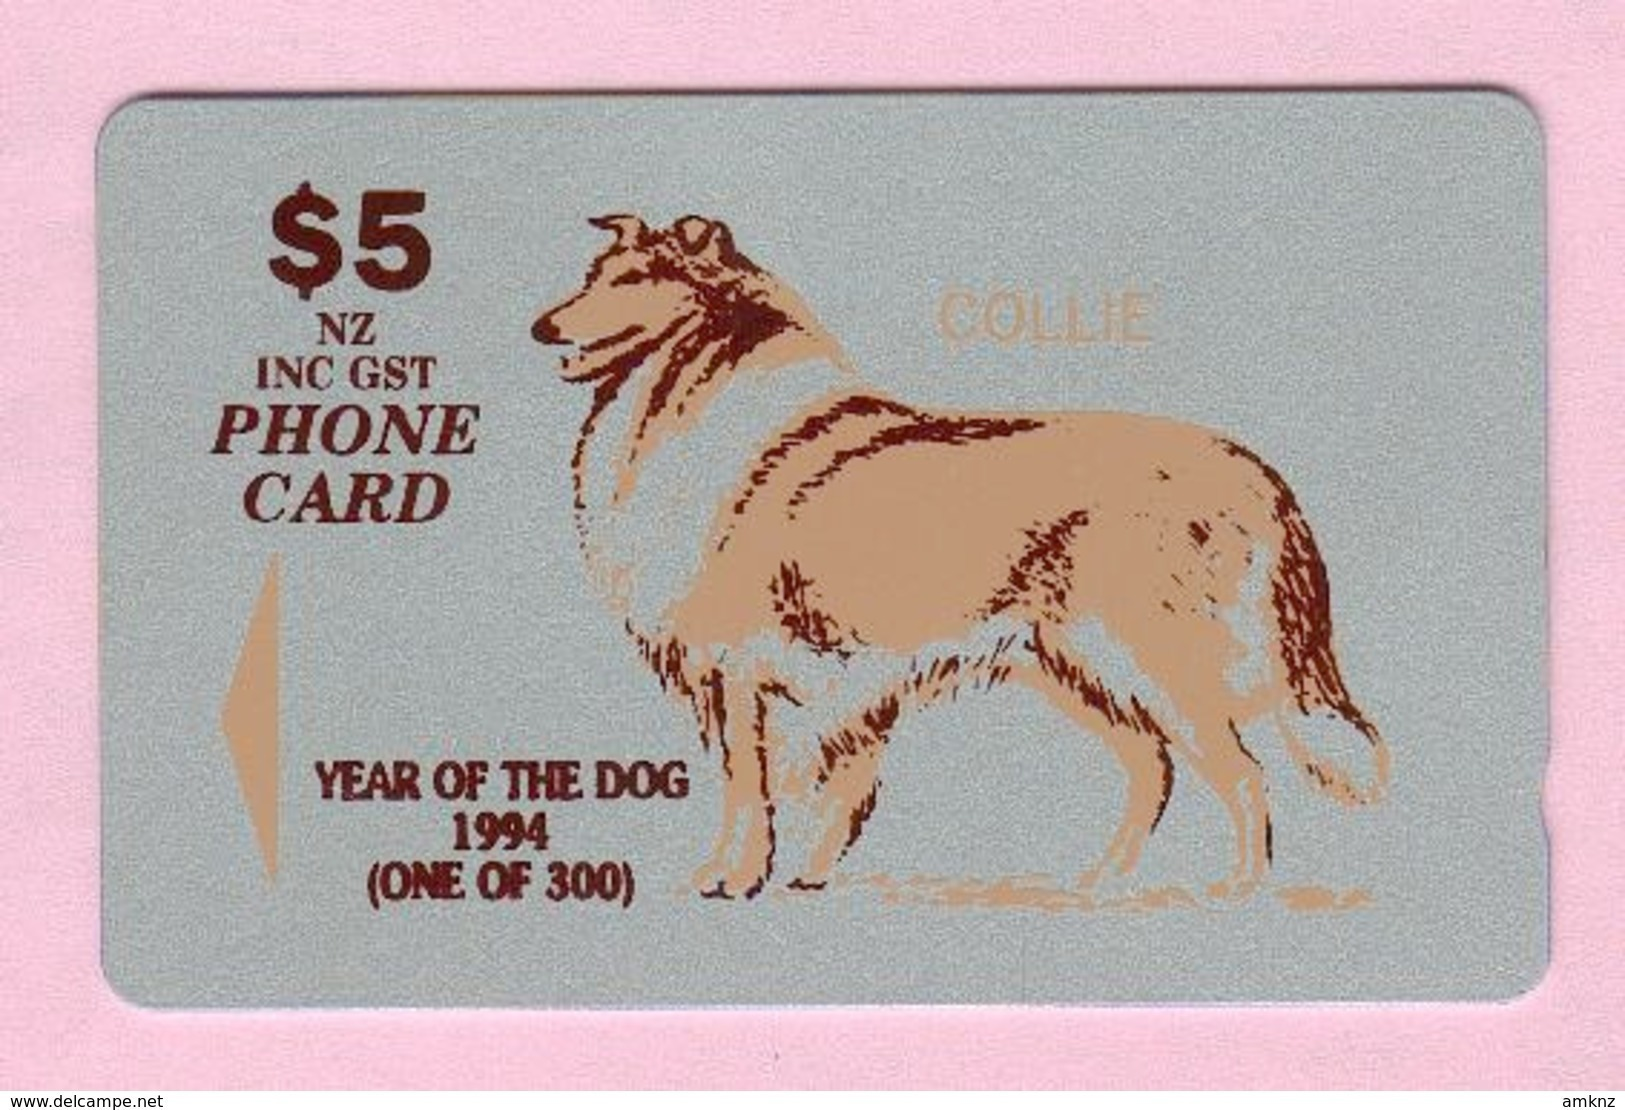 New Zealand - Private Overprint - 1994 Christchurch - $5 Year Of The Dog - Mint - NZ-CO-26a - Neuseeland